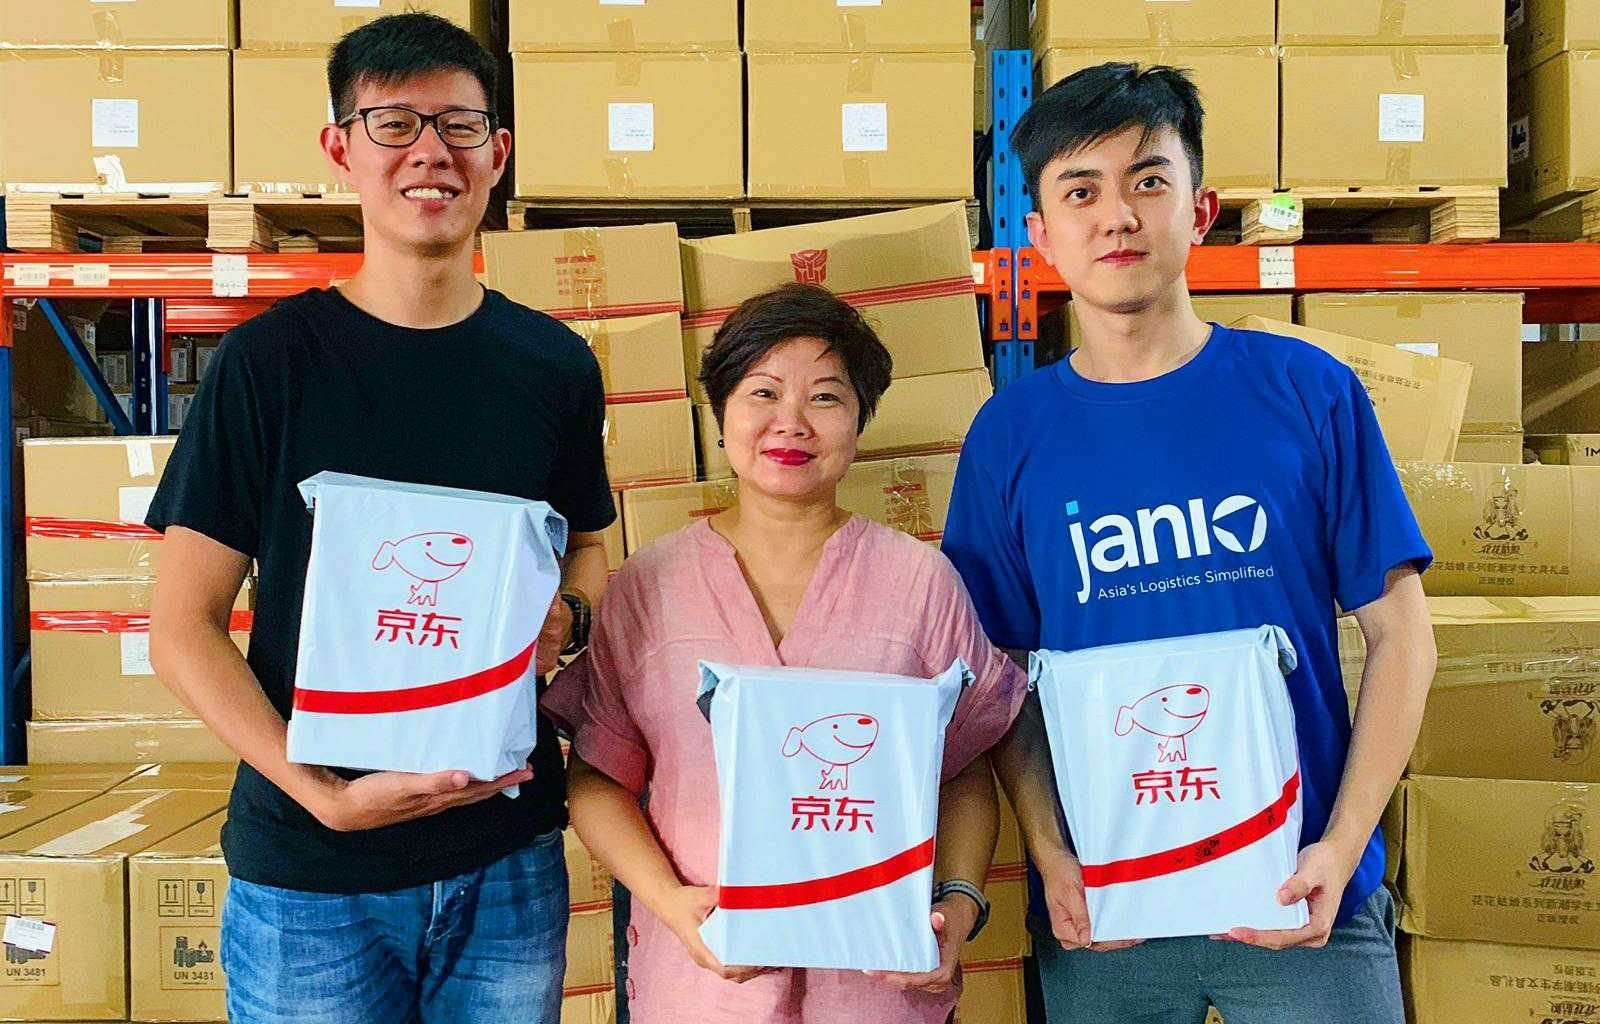 Janio's Shenzhen Hub – Ship from Shenzhen to Southeast Asia